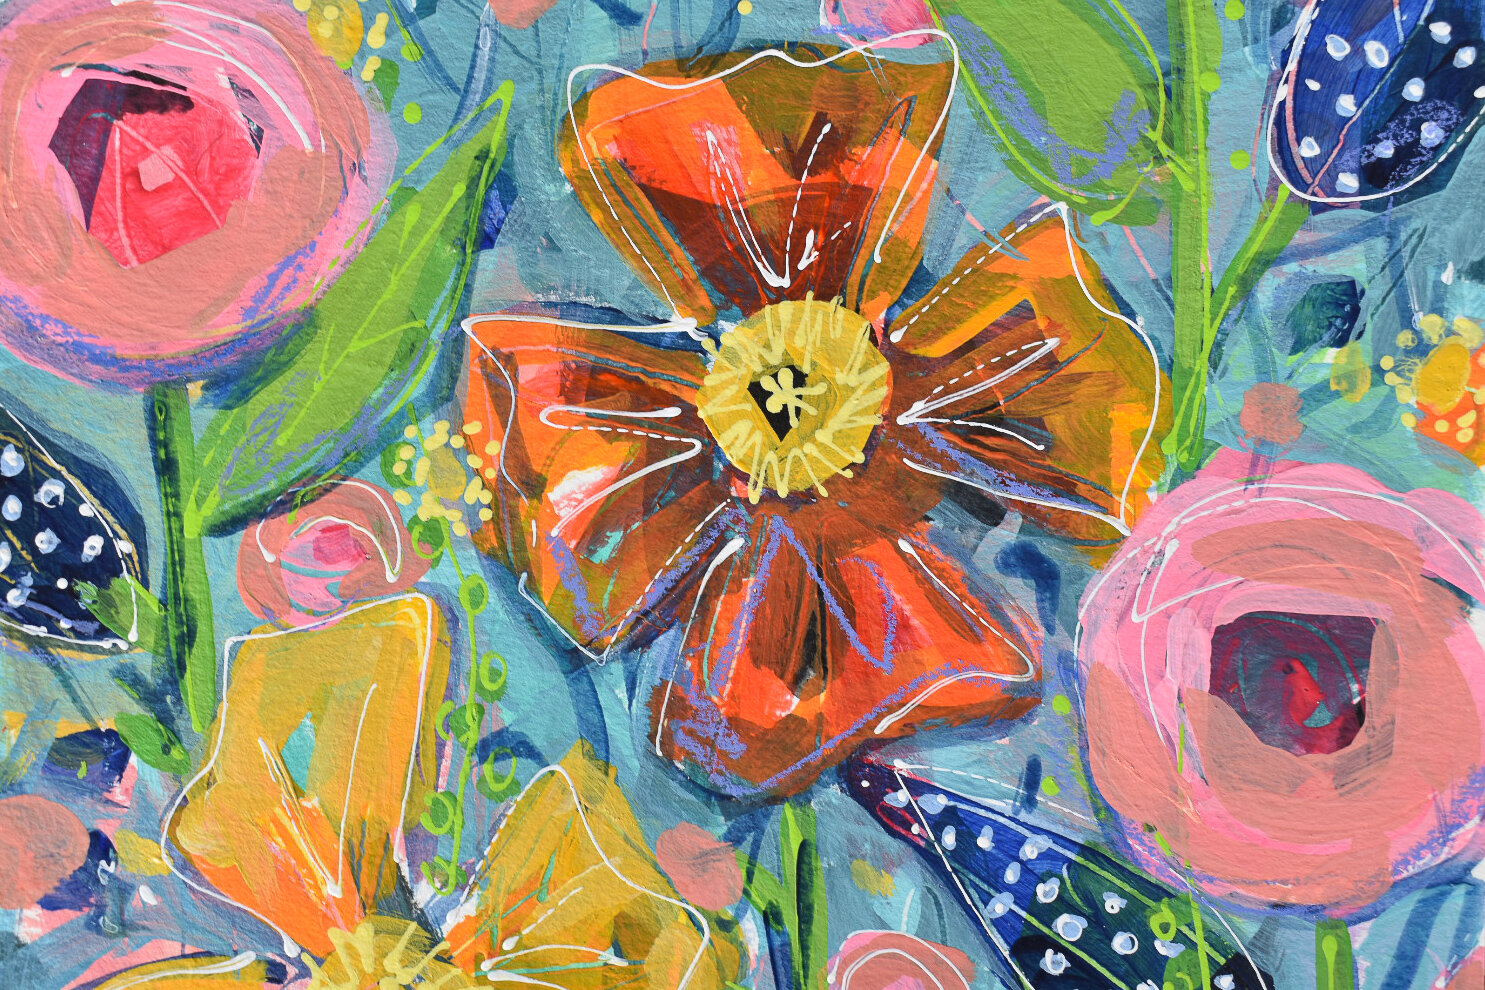 boho_flowers_abstract_daisyfaithart_painting_5.jpg